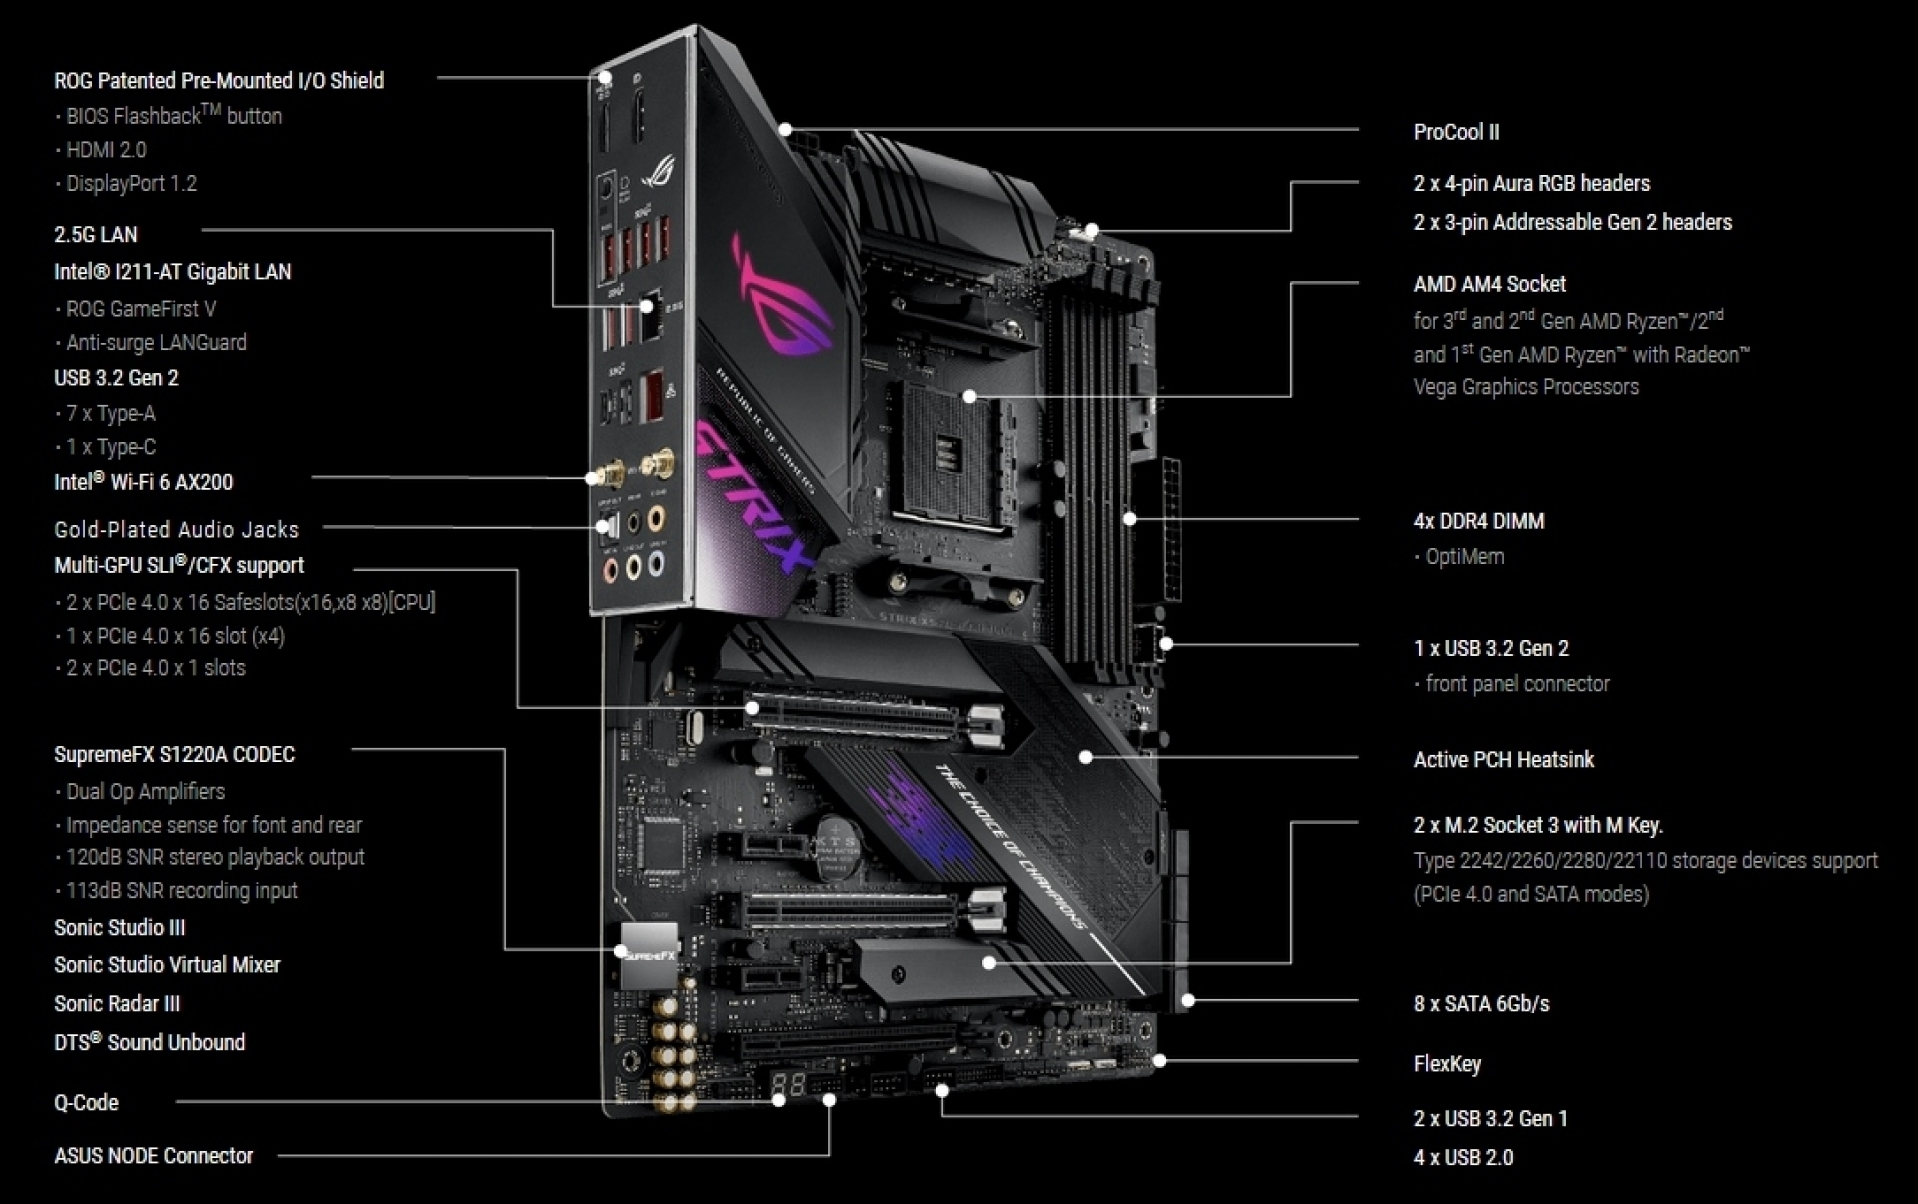 ASUS ROG Strix X570-E Gaming Review | Introduction and